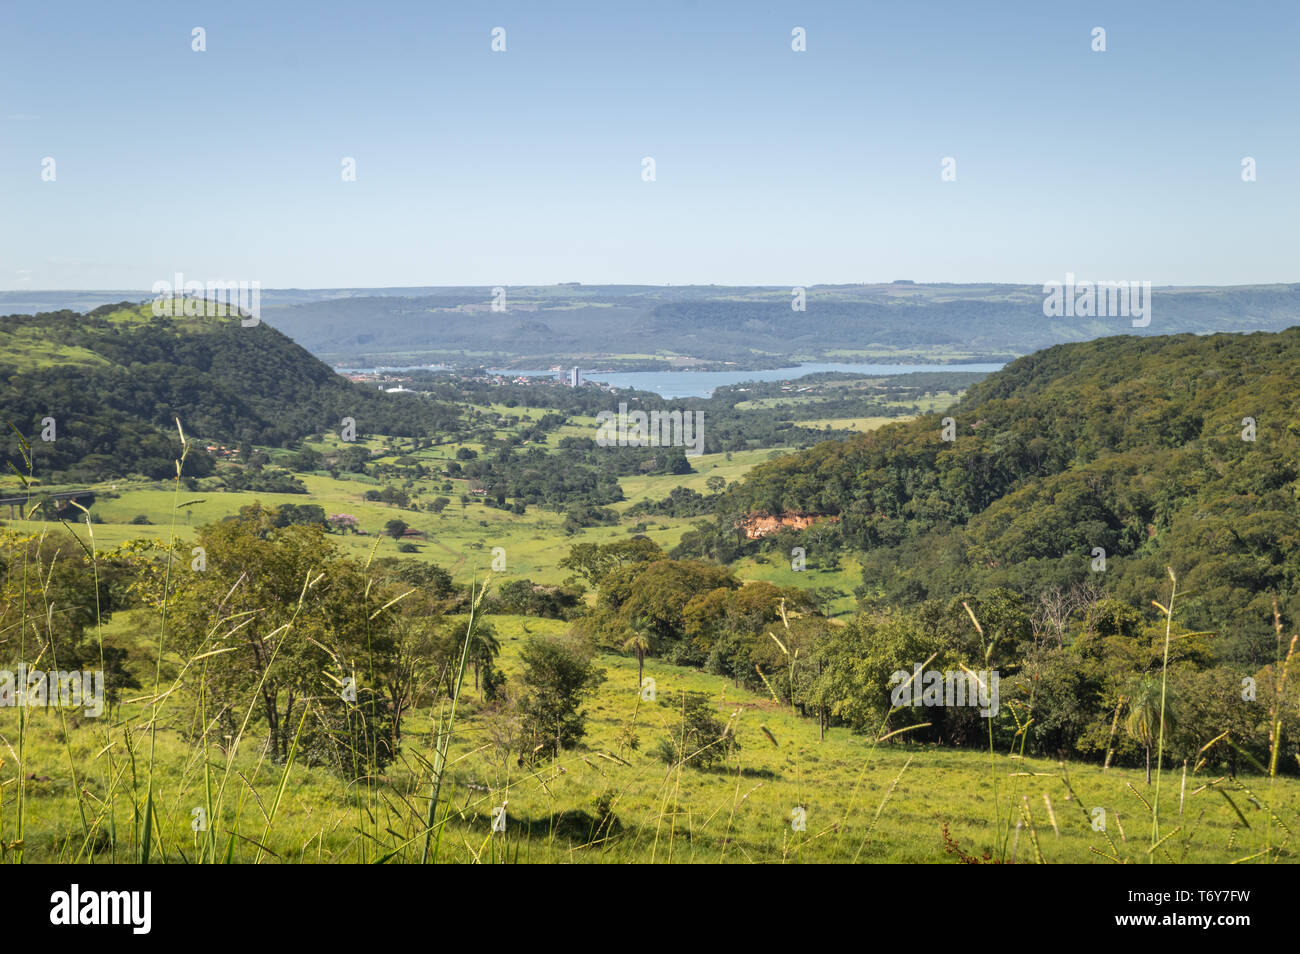 """High angle view of the """"Rio Grande"""" (Great River) that sets up the limit between SP`and MG states in Brazil Stock Photo"""